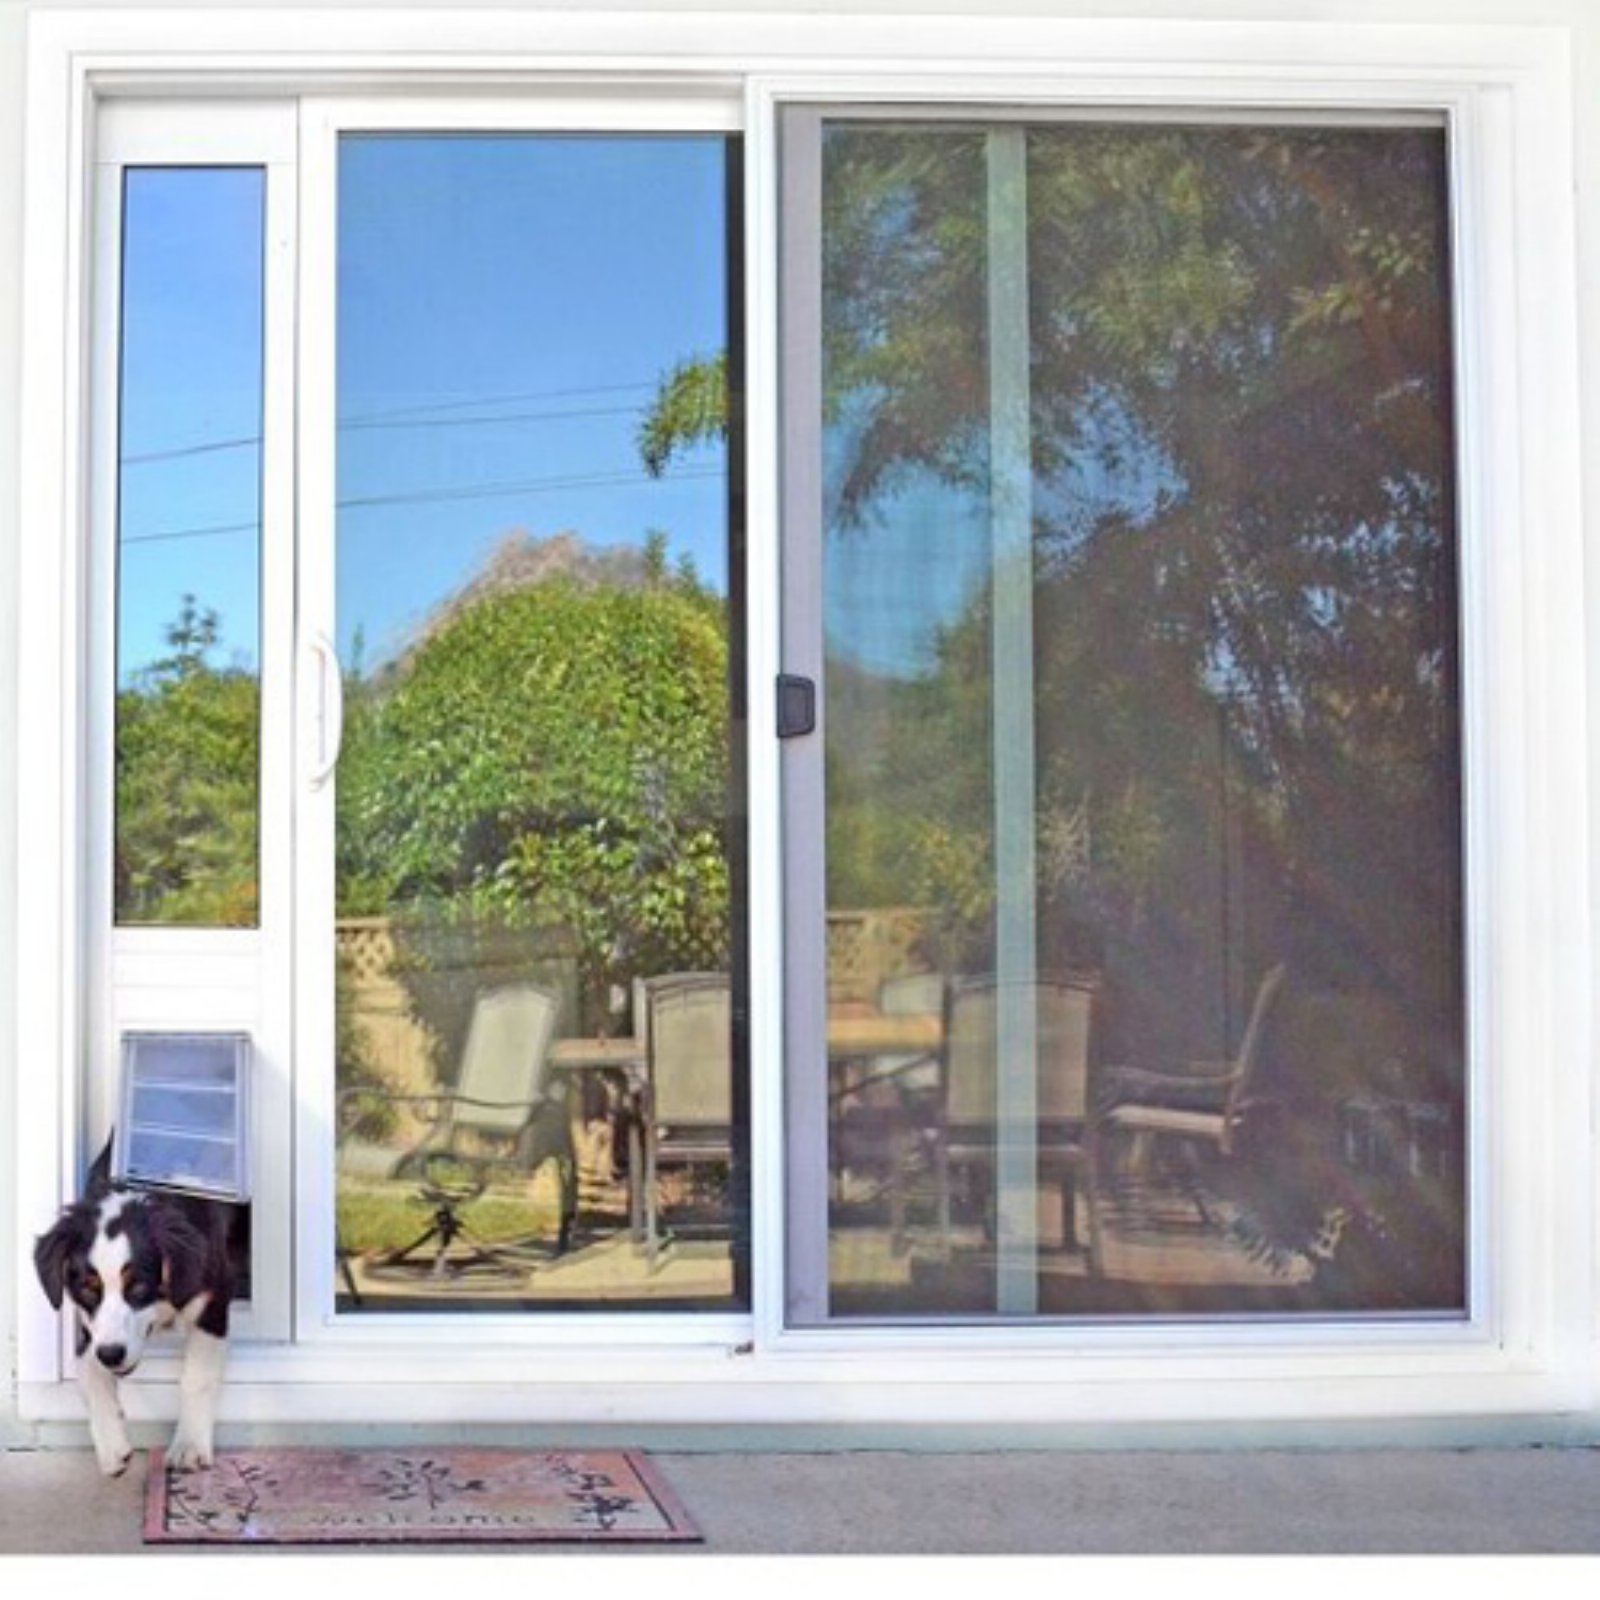 Endura Flap Pet Doors Thermo Panel 3E For Sliding Glass Doors 74.75 In. To  77.75 In. Tall   Walmart.com